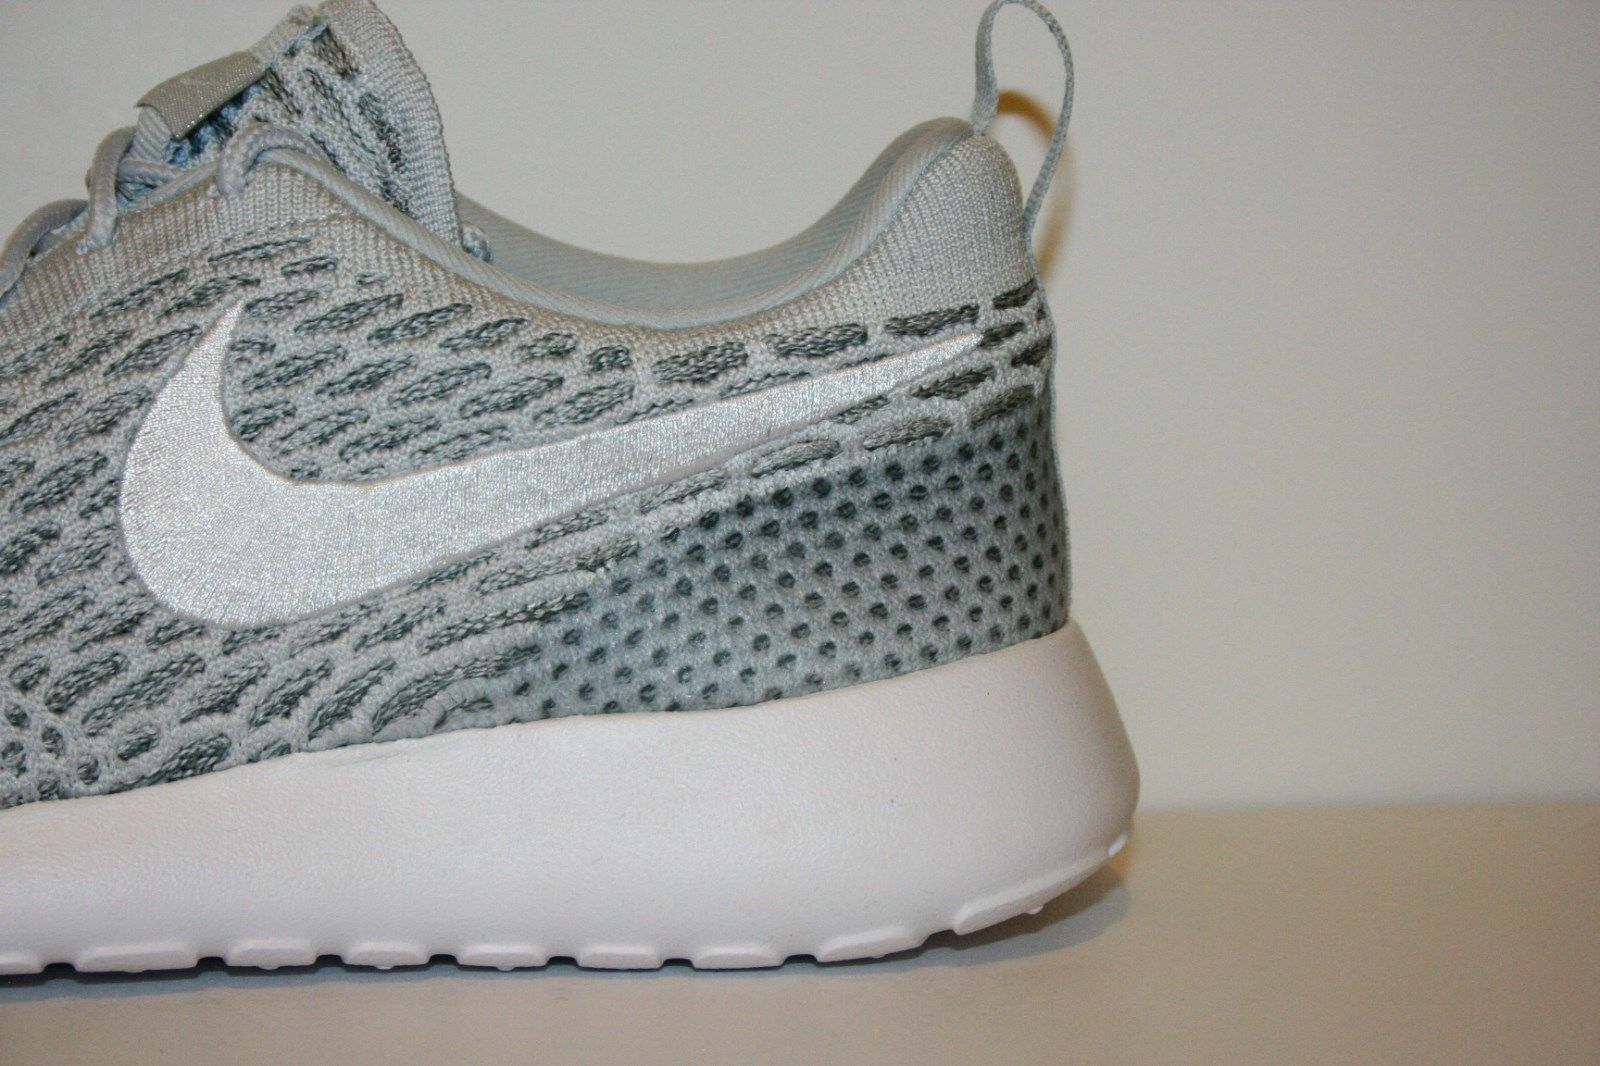 Original Nike Roshe Run One Flyknit Flyknit Flyknit Cool grey white 704927 009 Frauen Größe c18eff